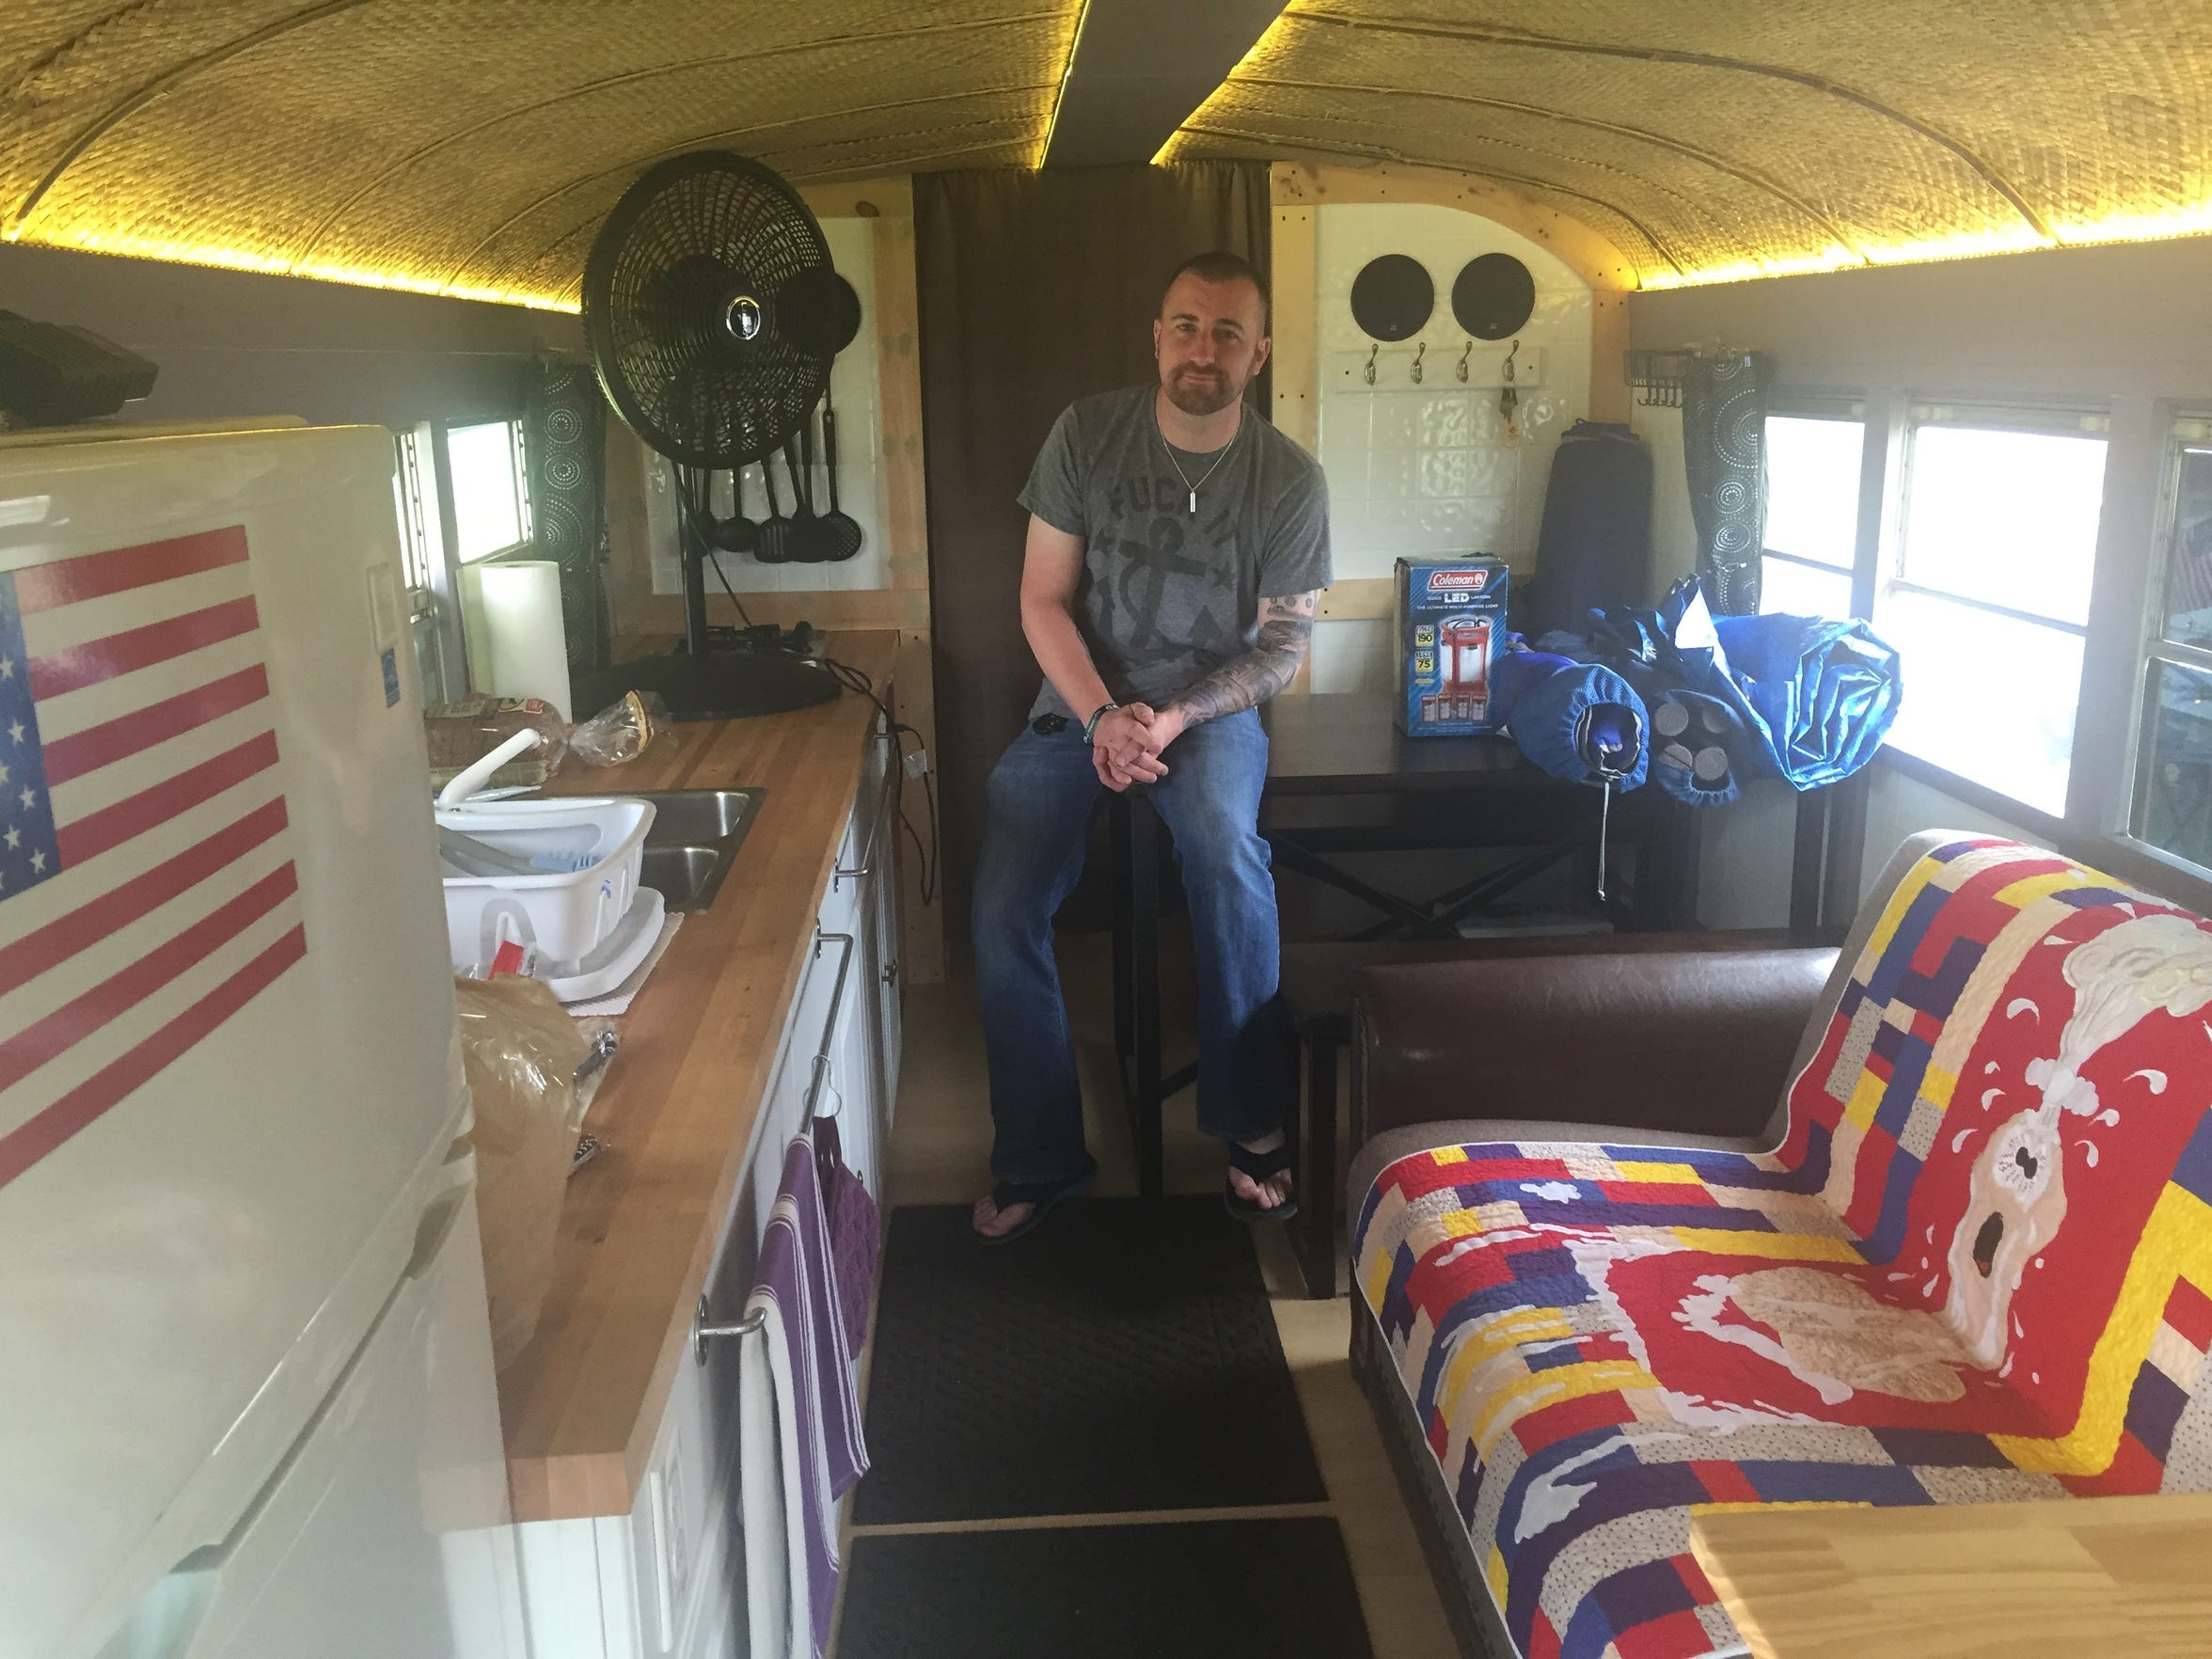 Joel Foushee spent $15,000 decking out a school bus and turning it into a Firefly campmobile.